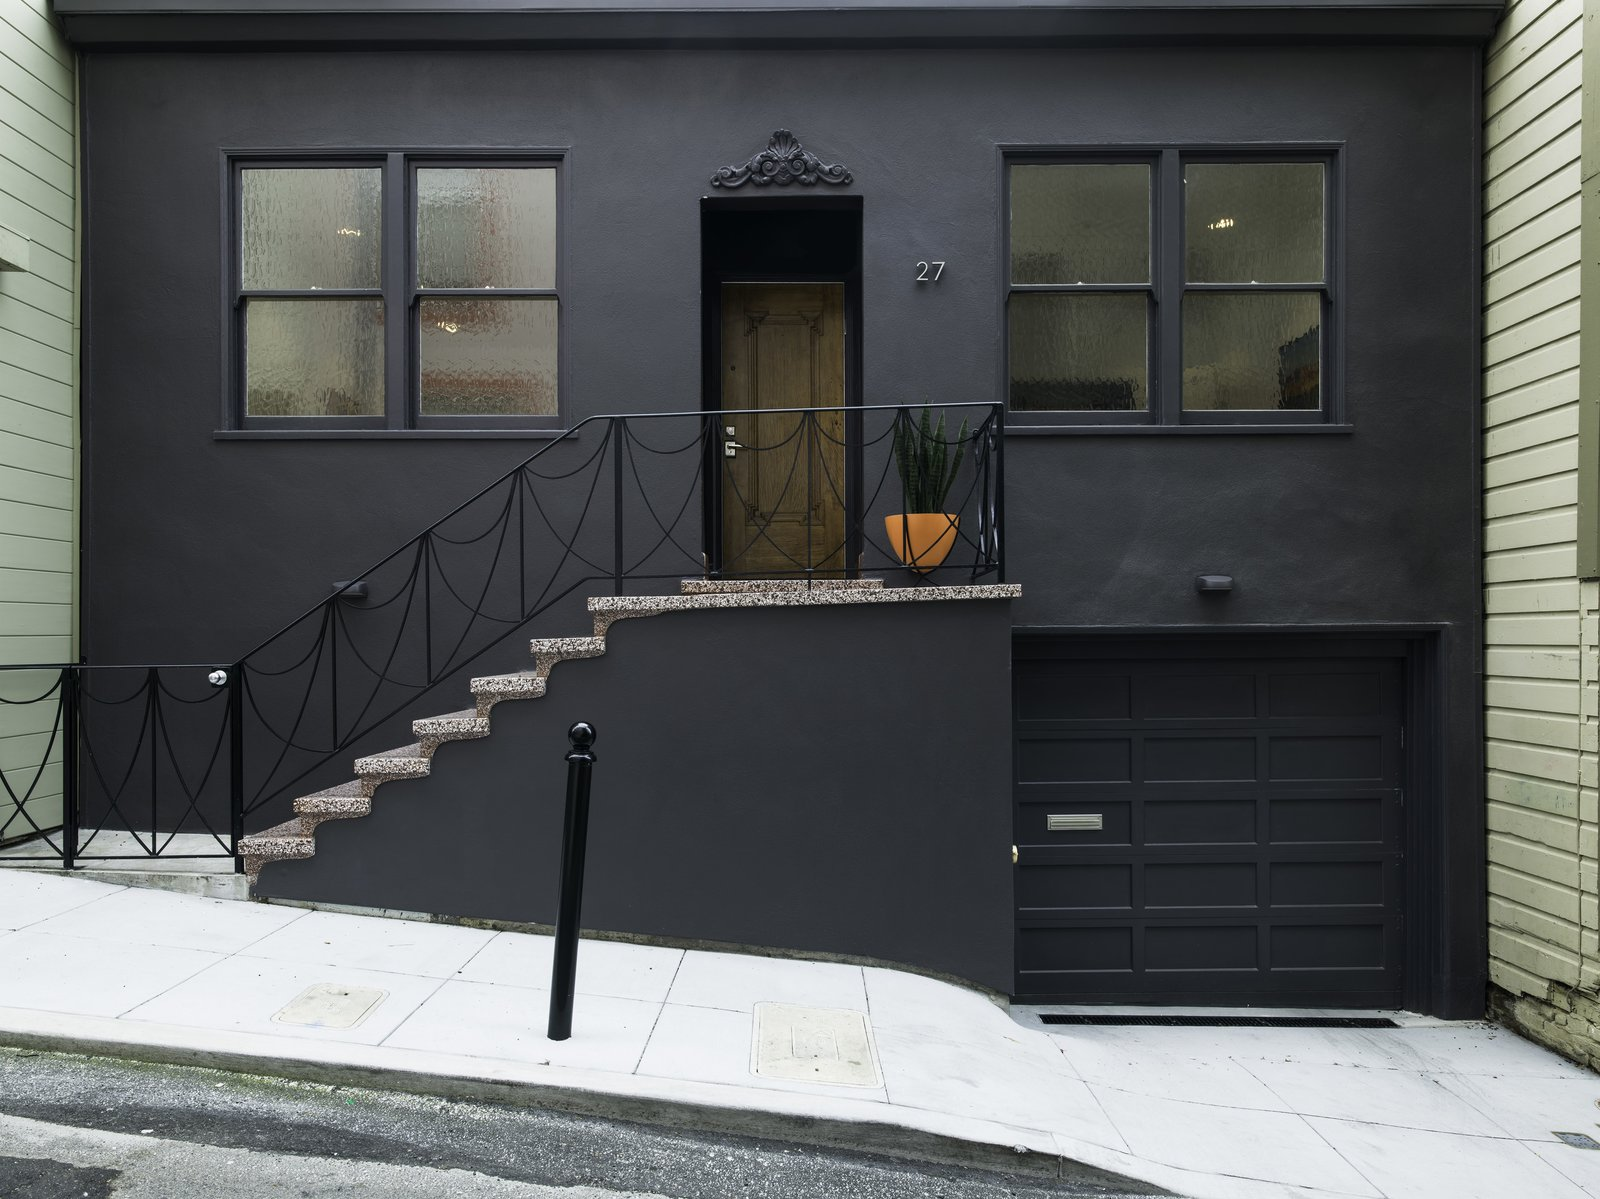 The historic front facade (Alley view) of the house which was preserved and restored. The Sun Room addition at the rear is not visible from the Alley.  Telegraph Hill Periscope by Samaha+Hart Architecture